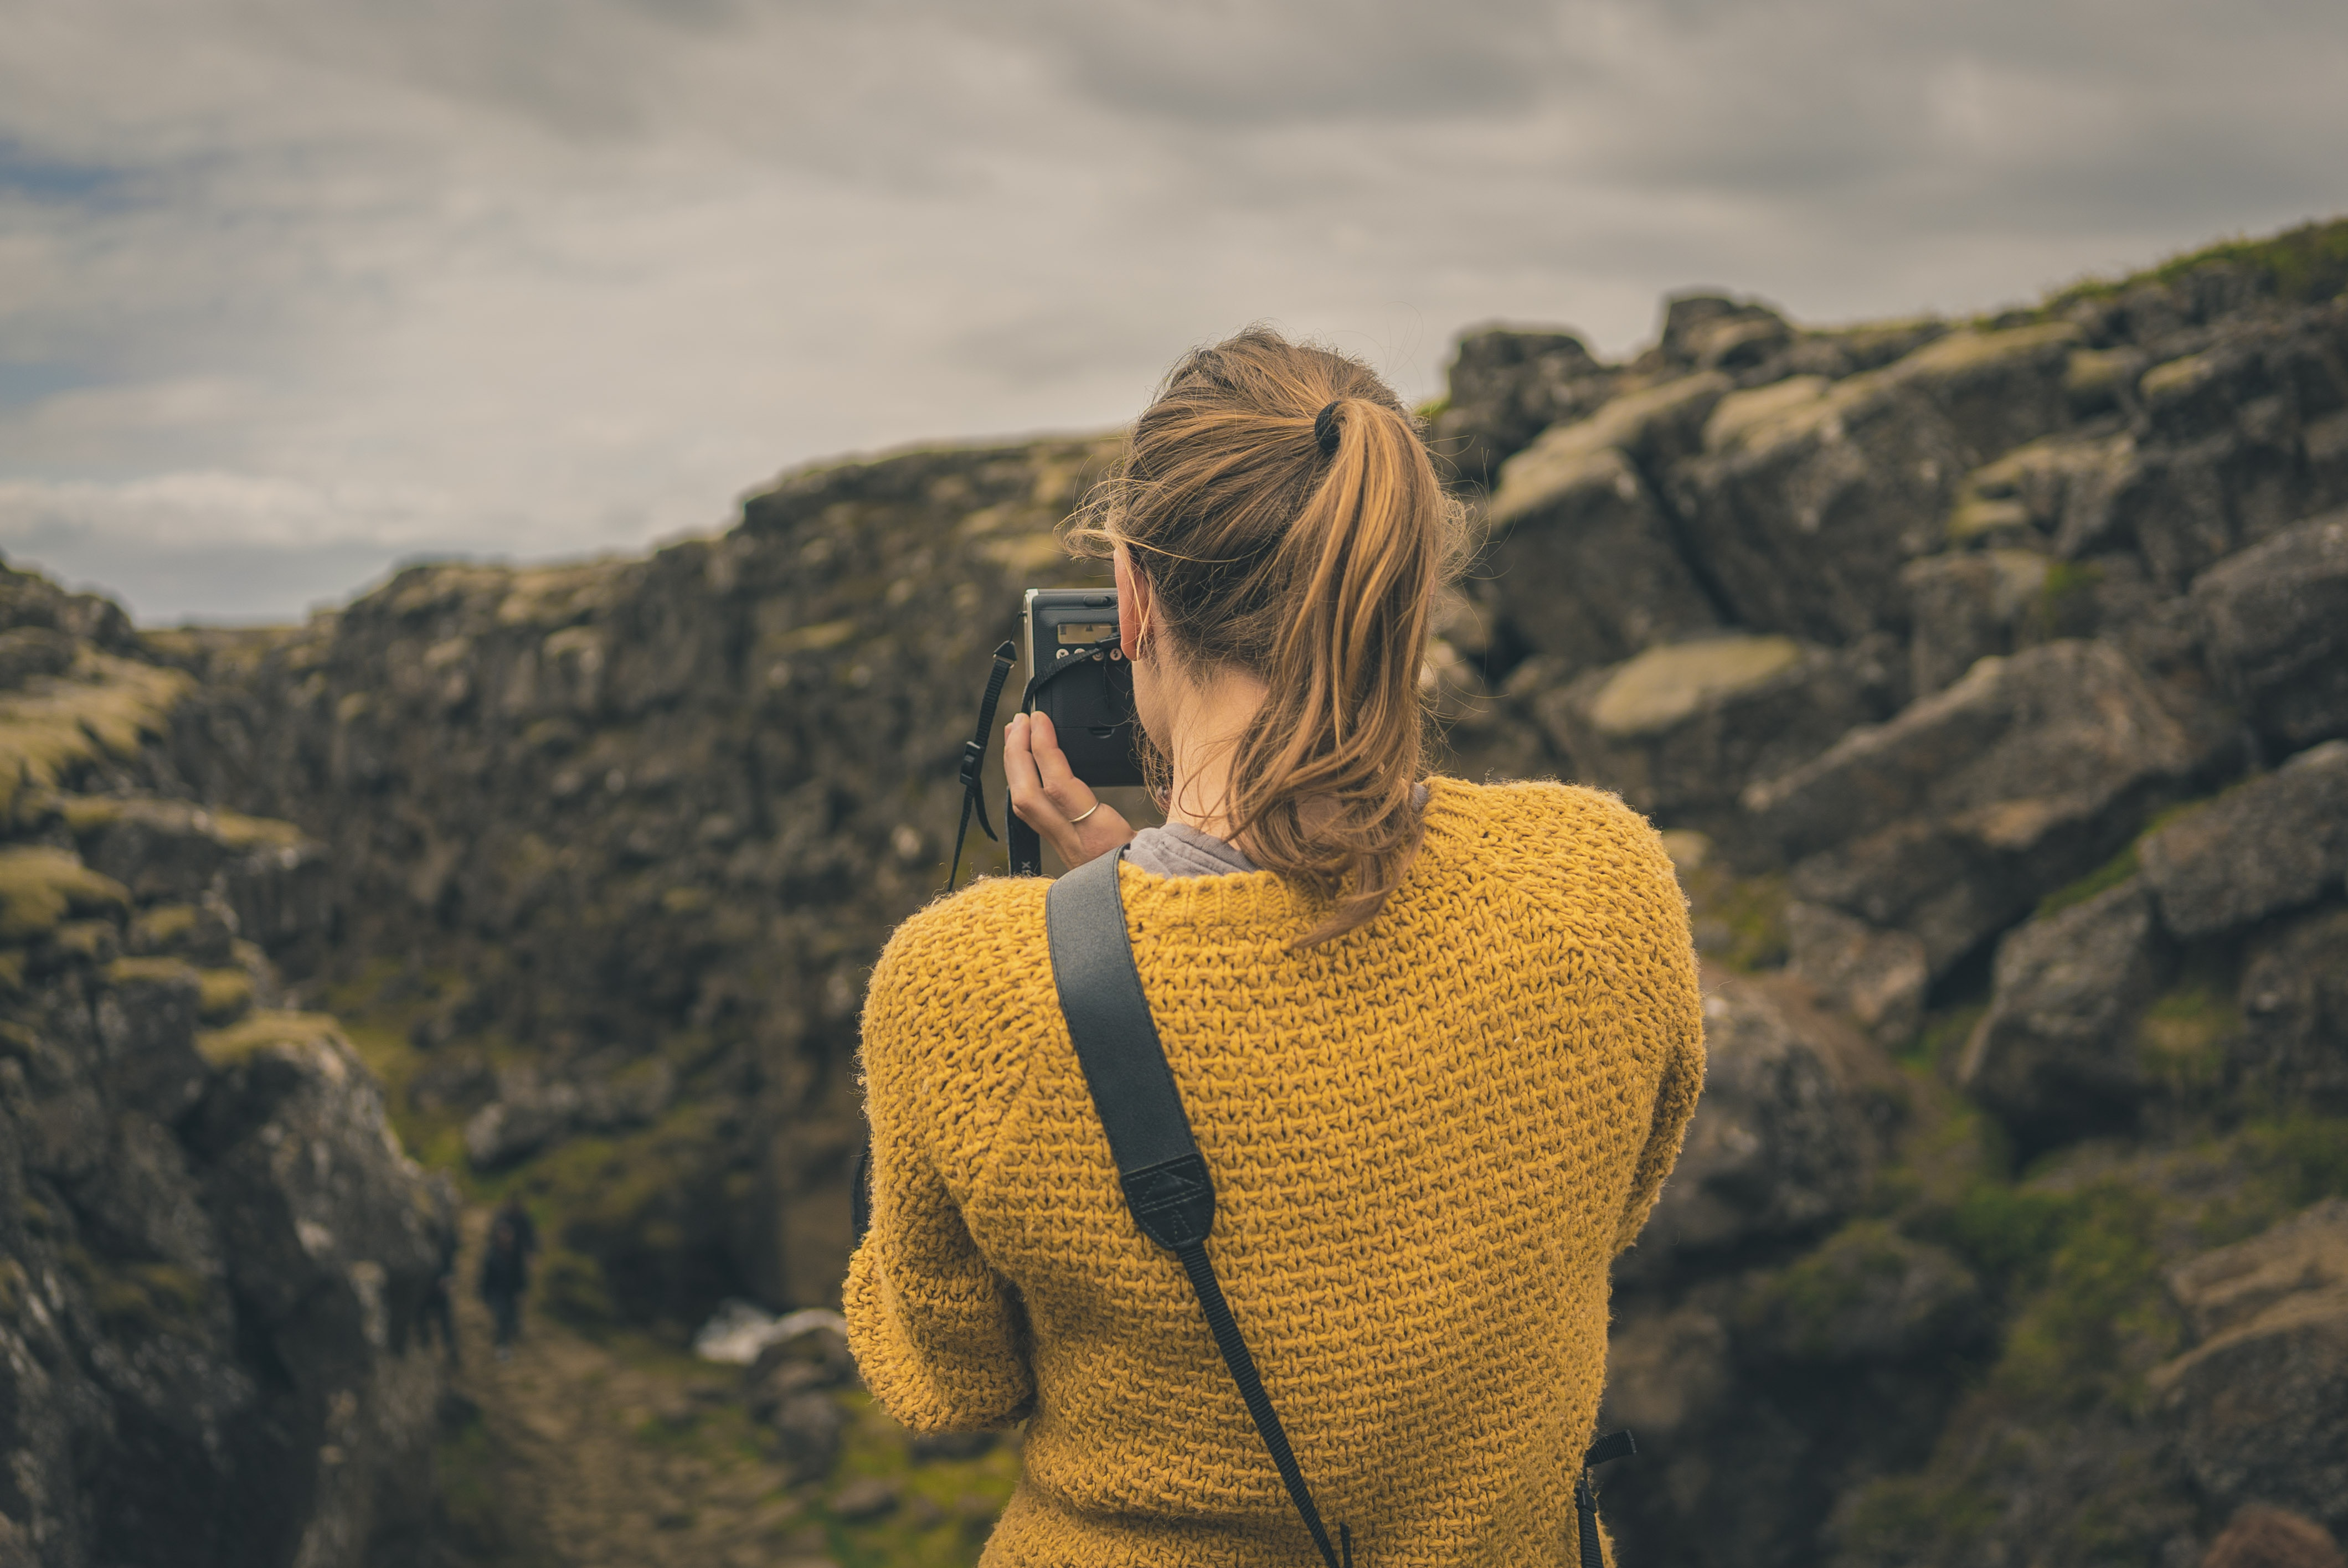 A lady taking a photo during hiking